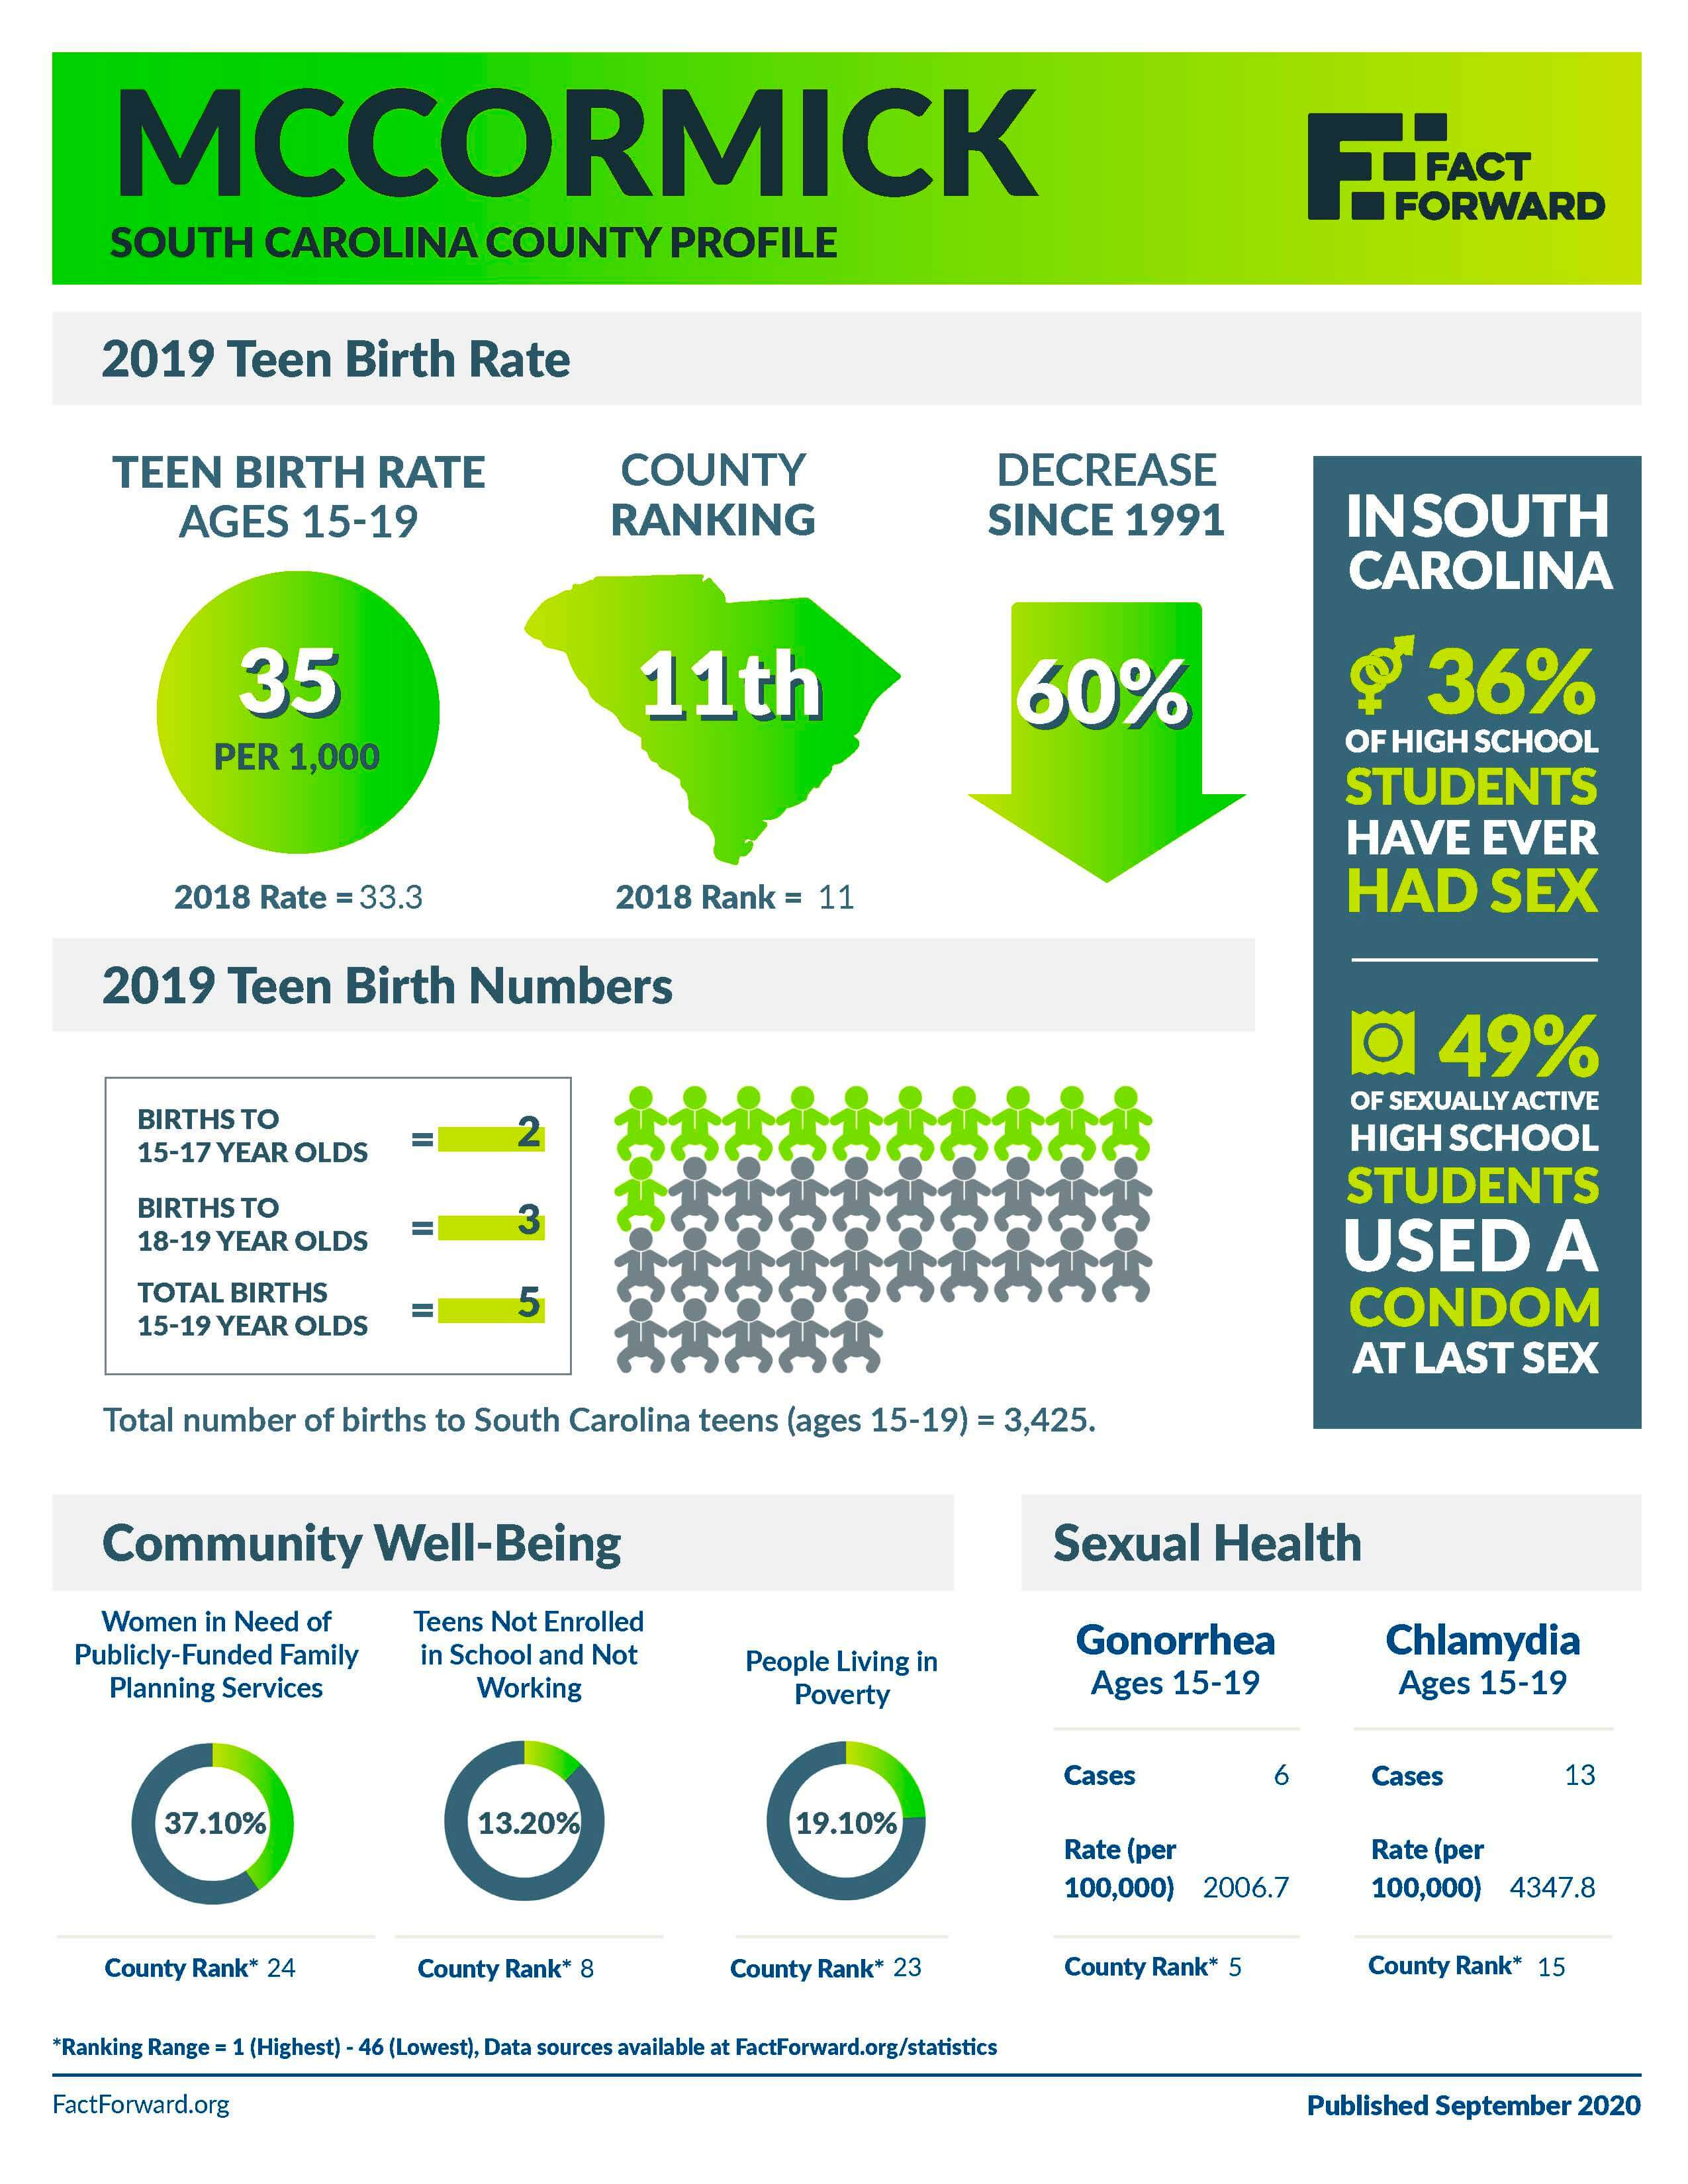 McCormick Teen Birth Data